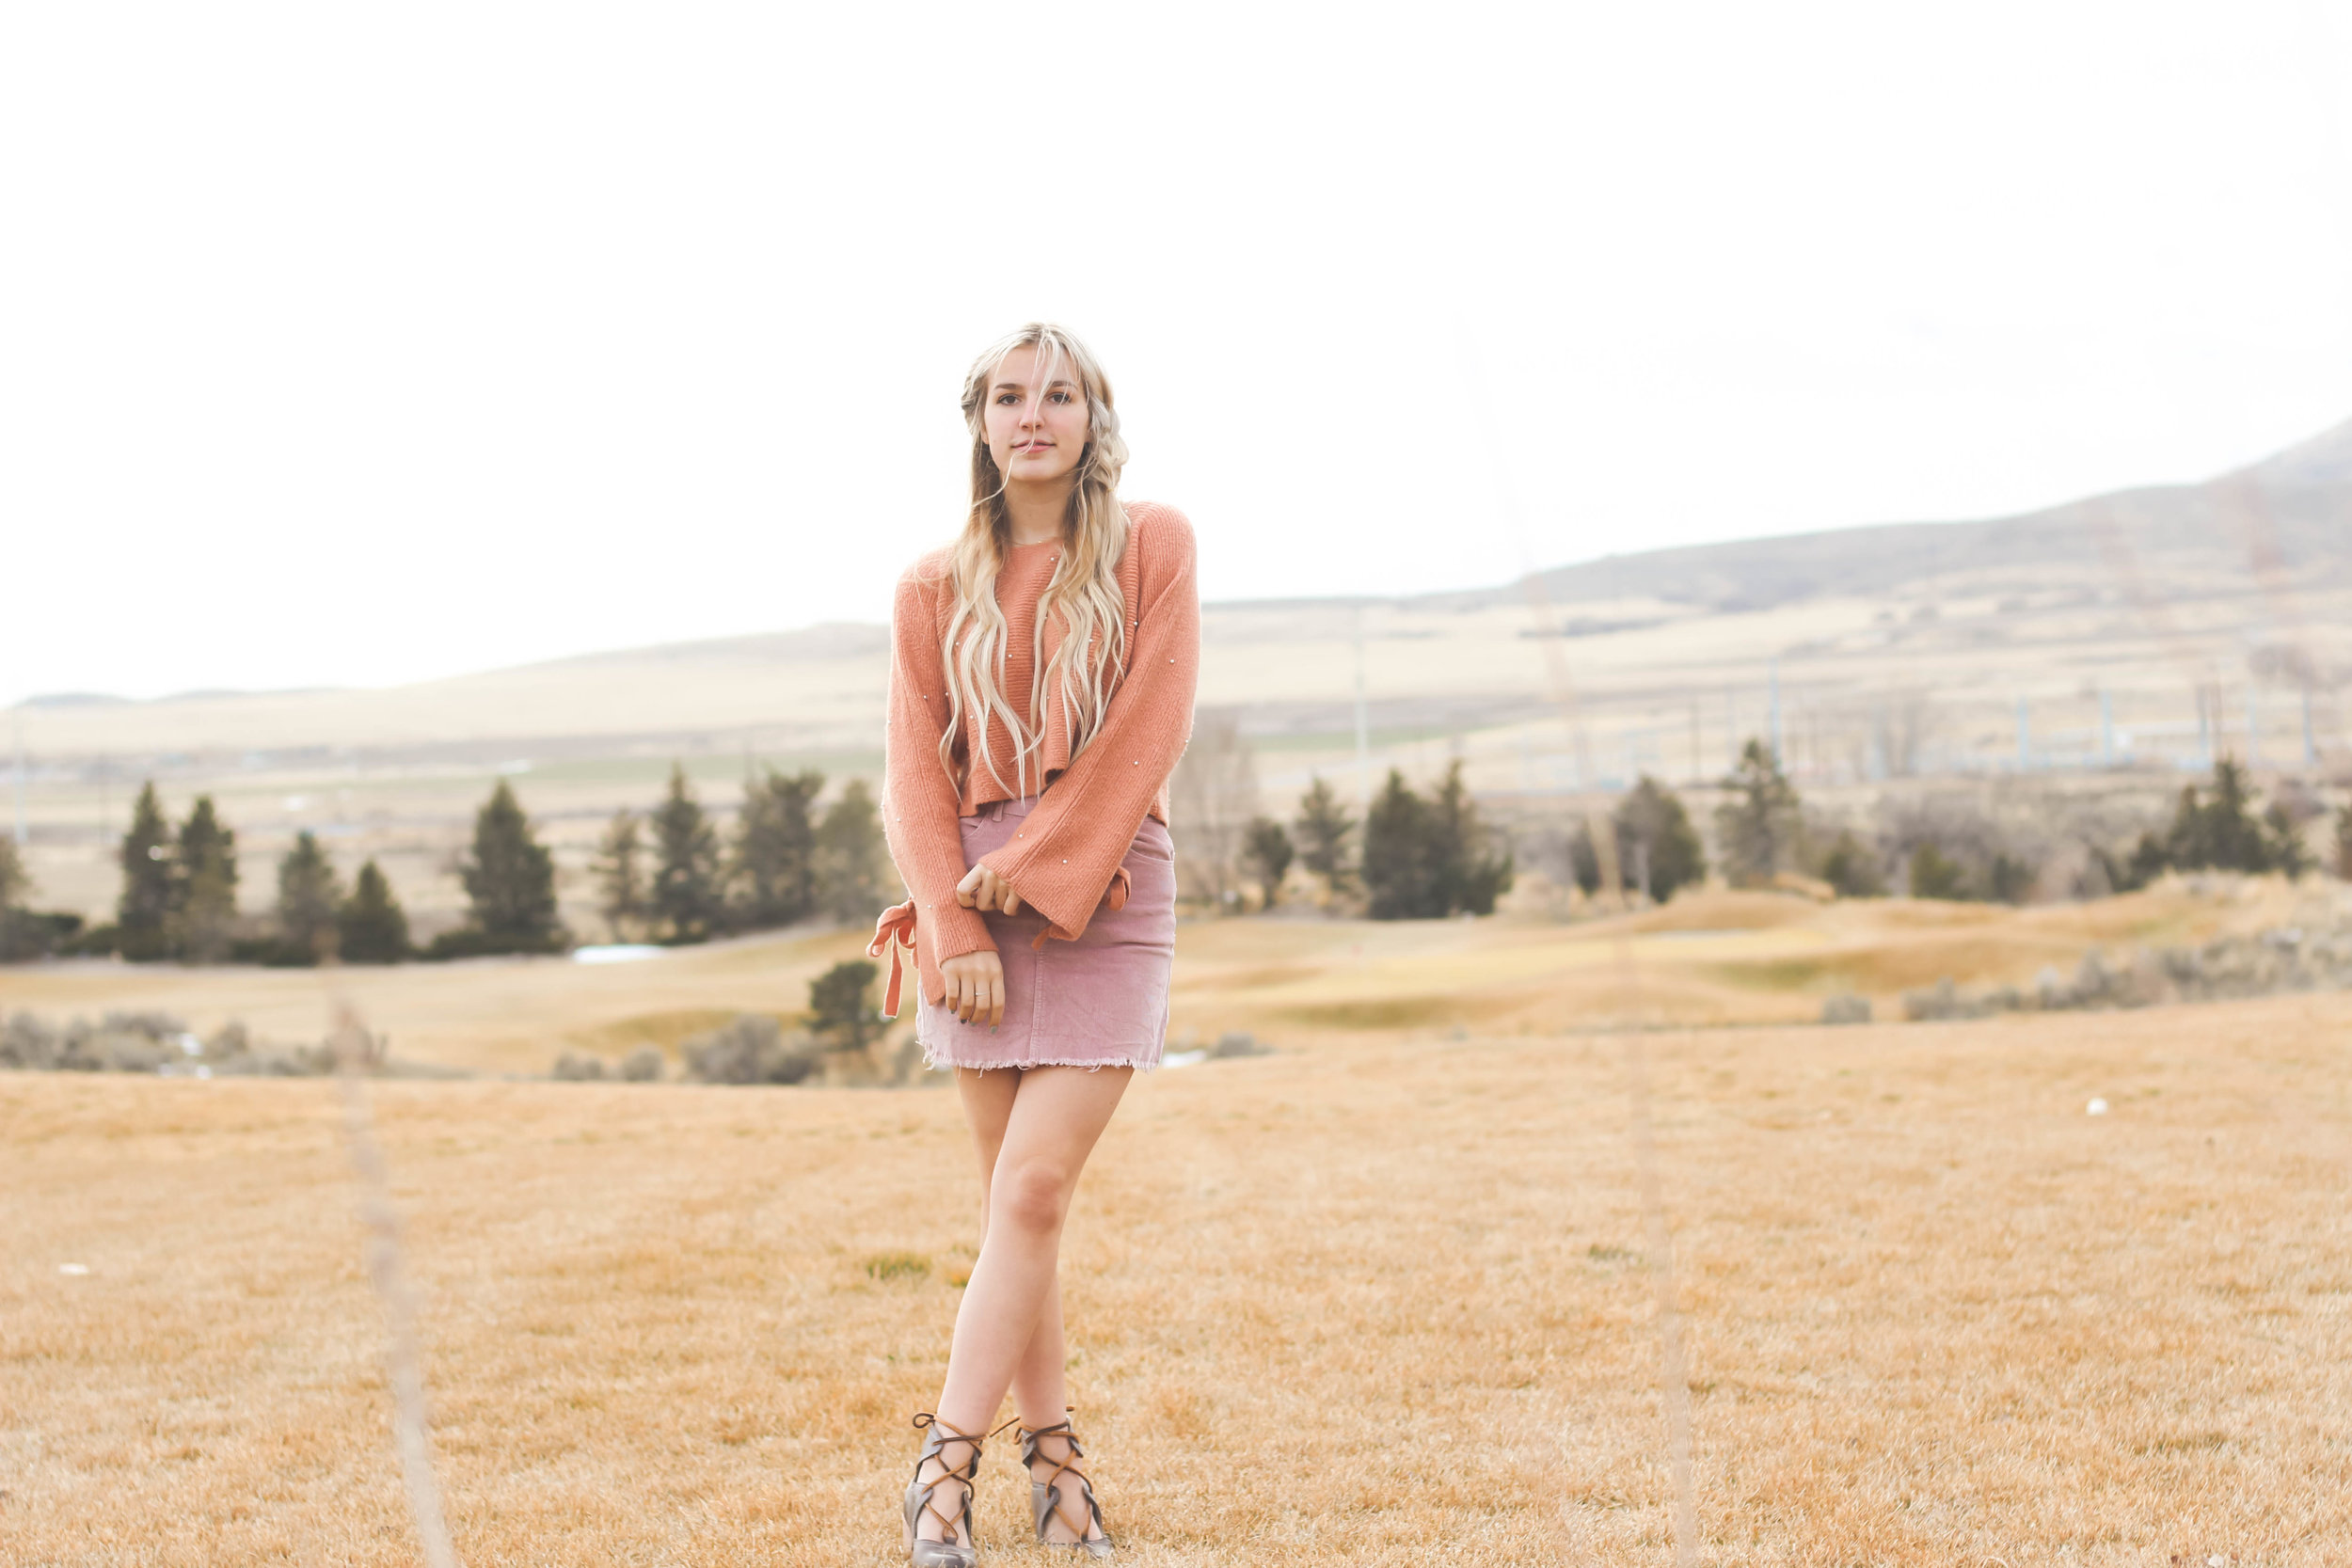 Brandy Melville Pink Corduroy Skirt and Pink Cropped Sweater with Steve Madden Heels: Valentine's Day Outfit Inspiration